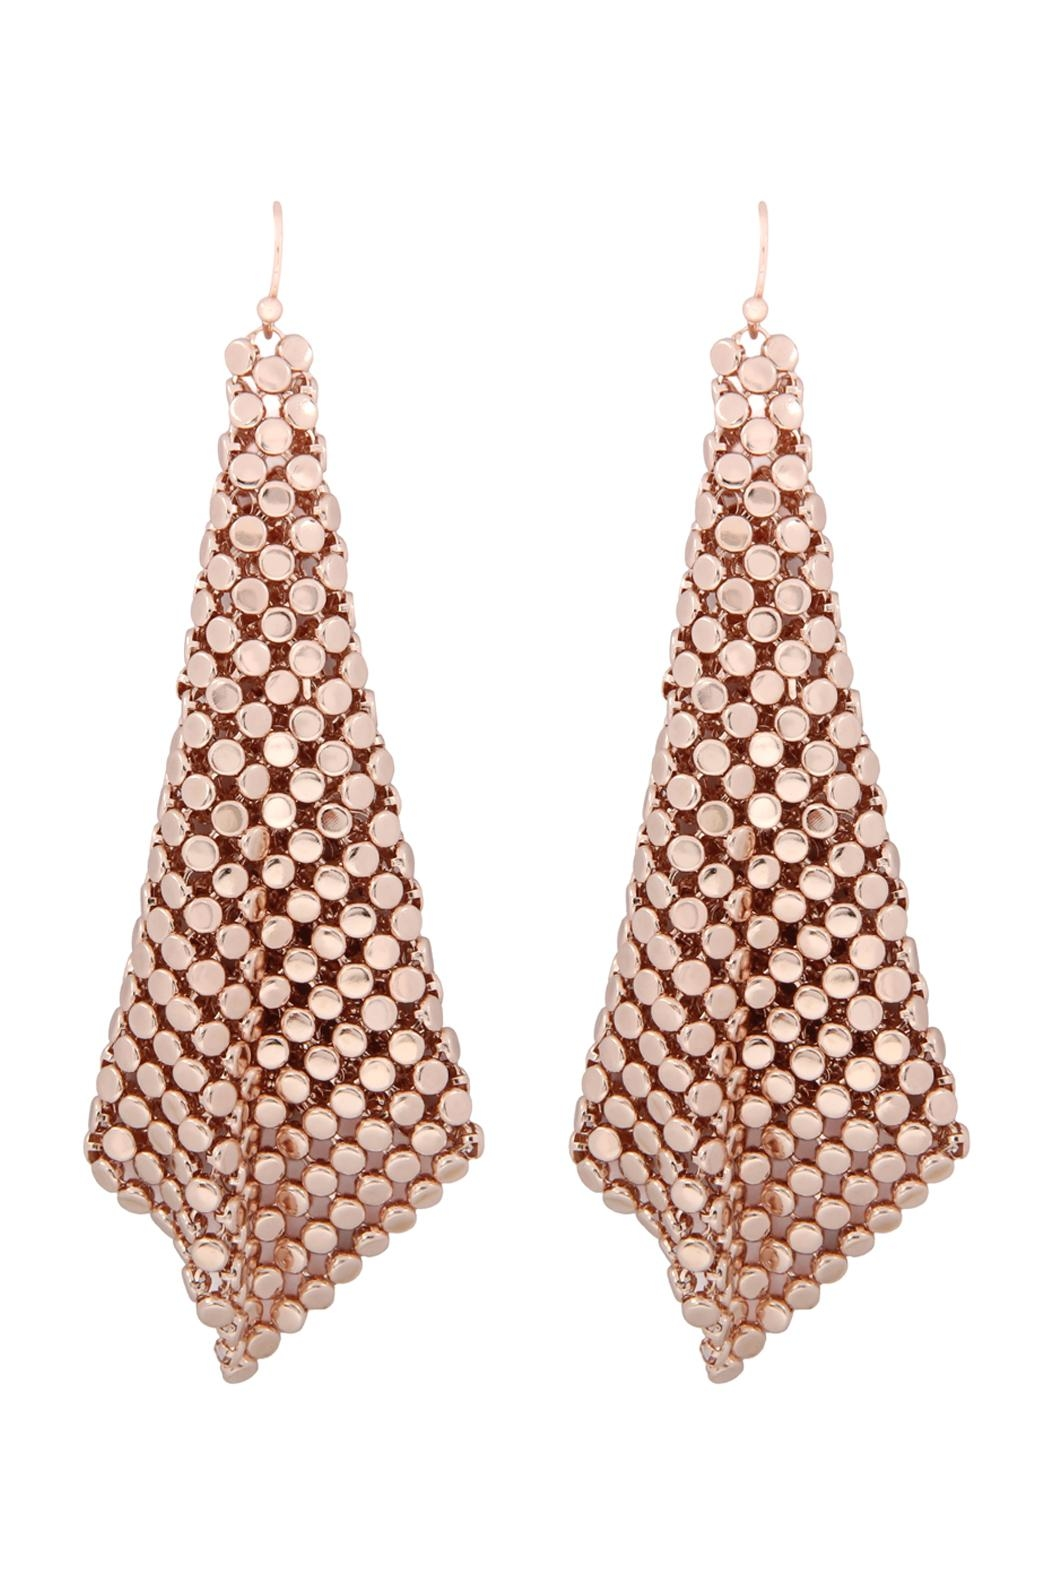 Riah Fashion Floppy-Cone-Square Shape-Drop-Earrings - Front Cropped Image